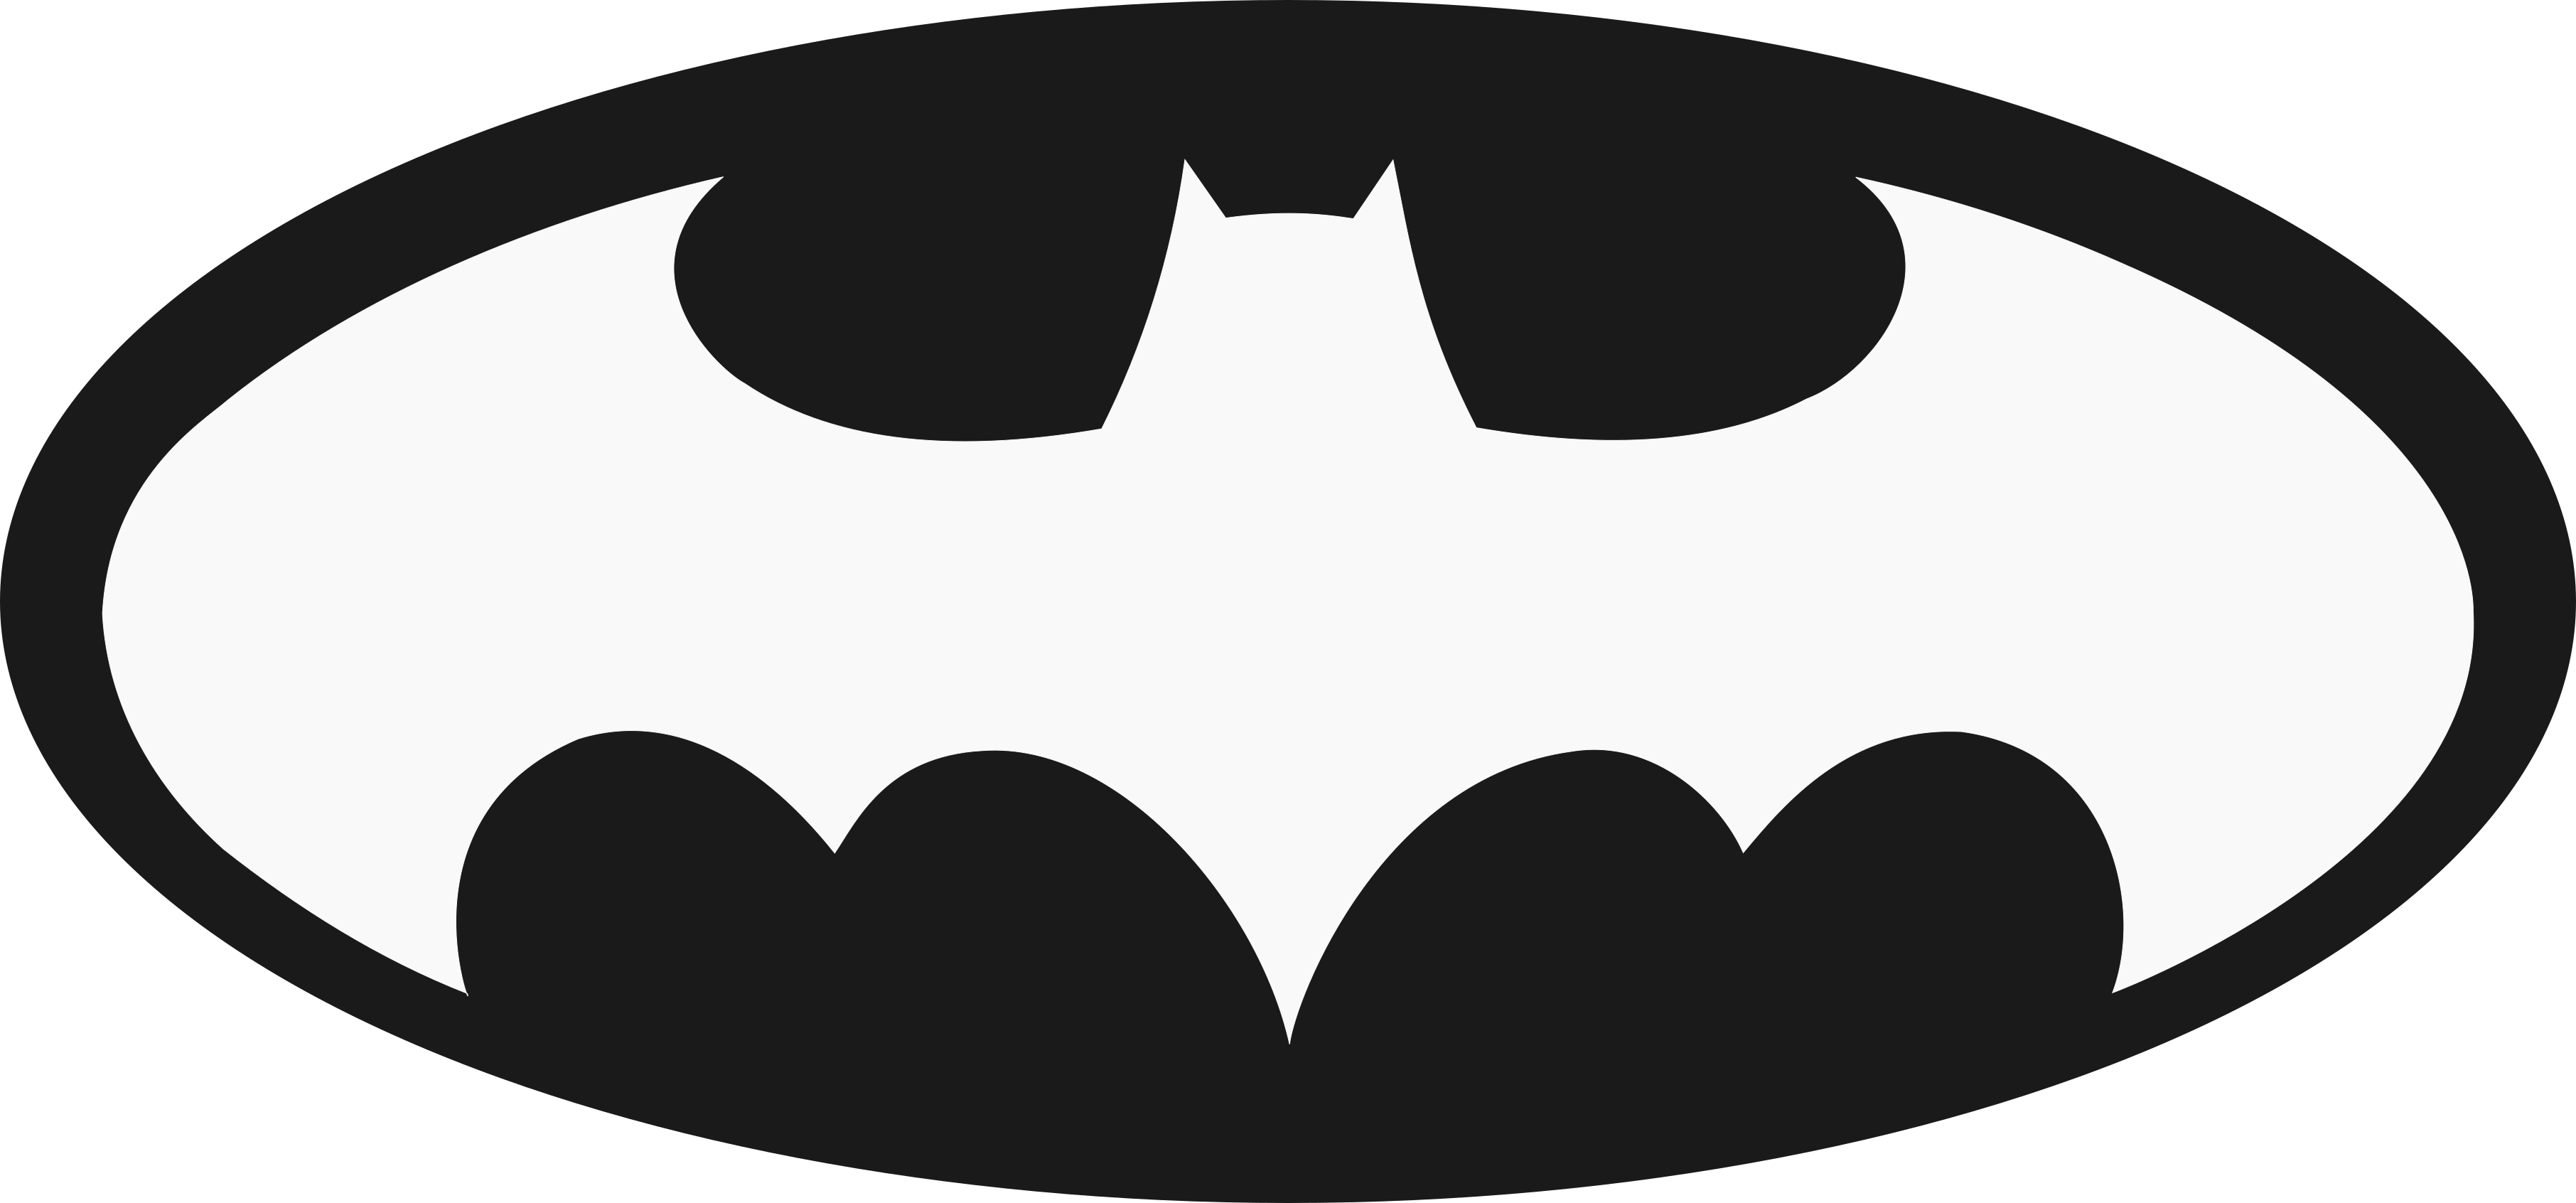 Dick Grayson  Batman Wiki  FANDOM powered by Wikia